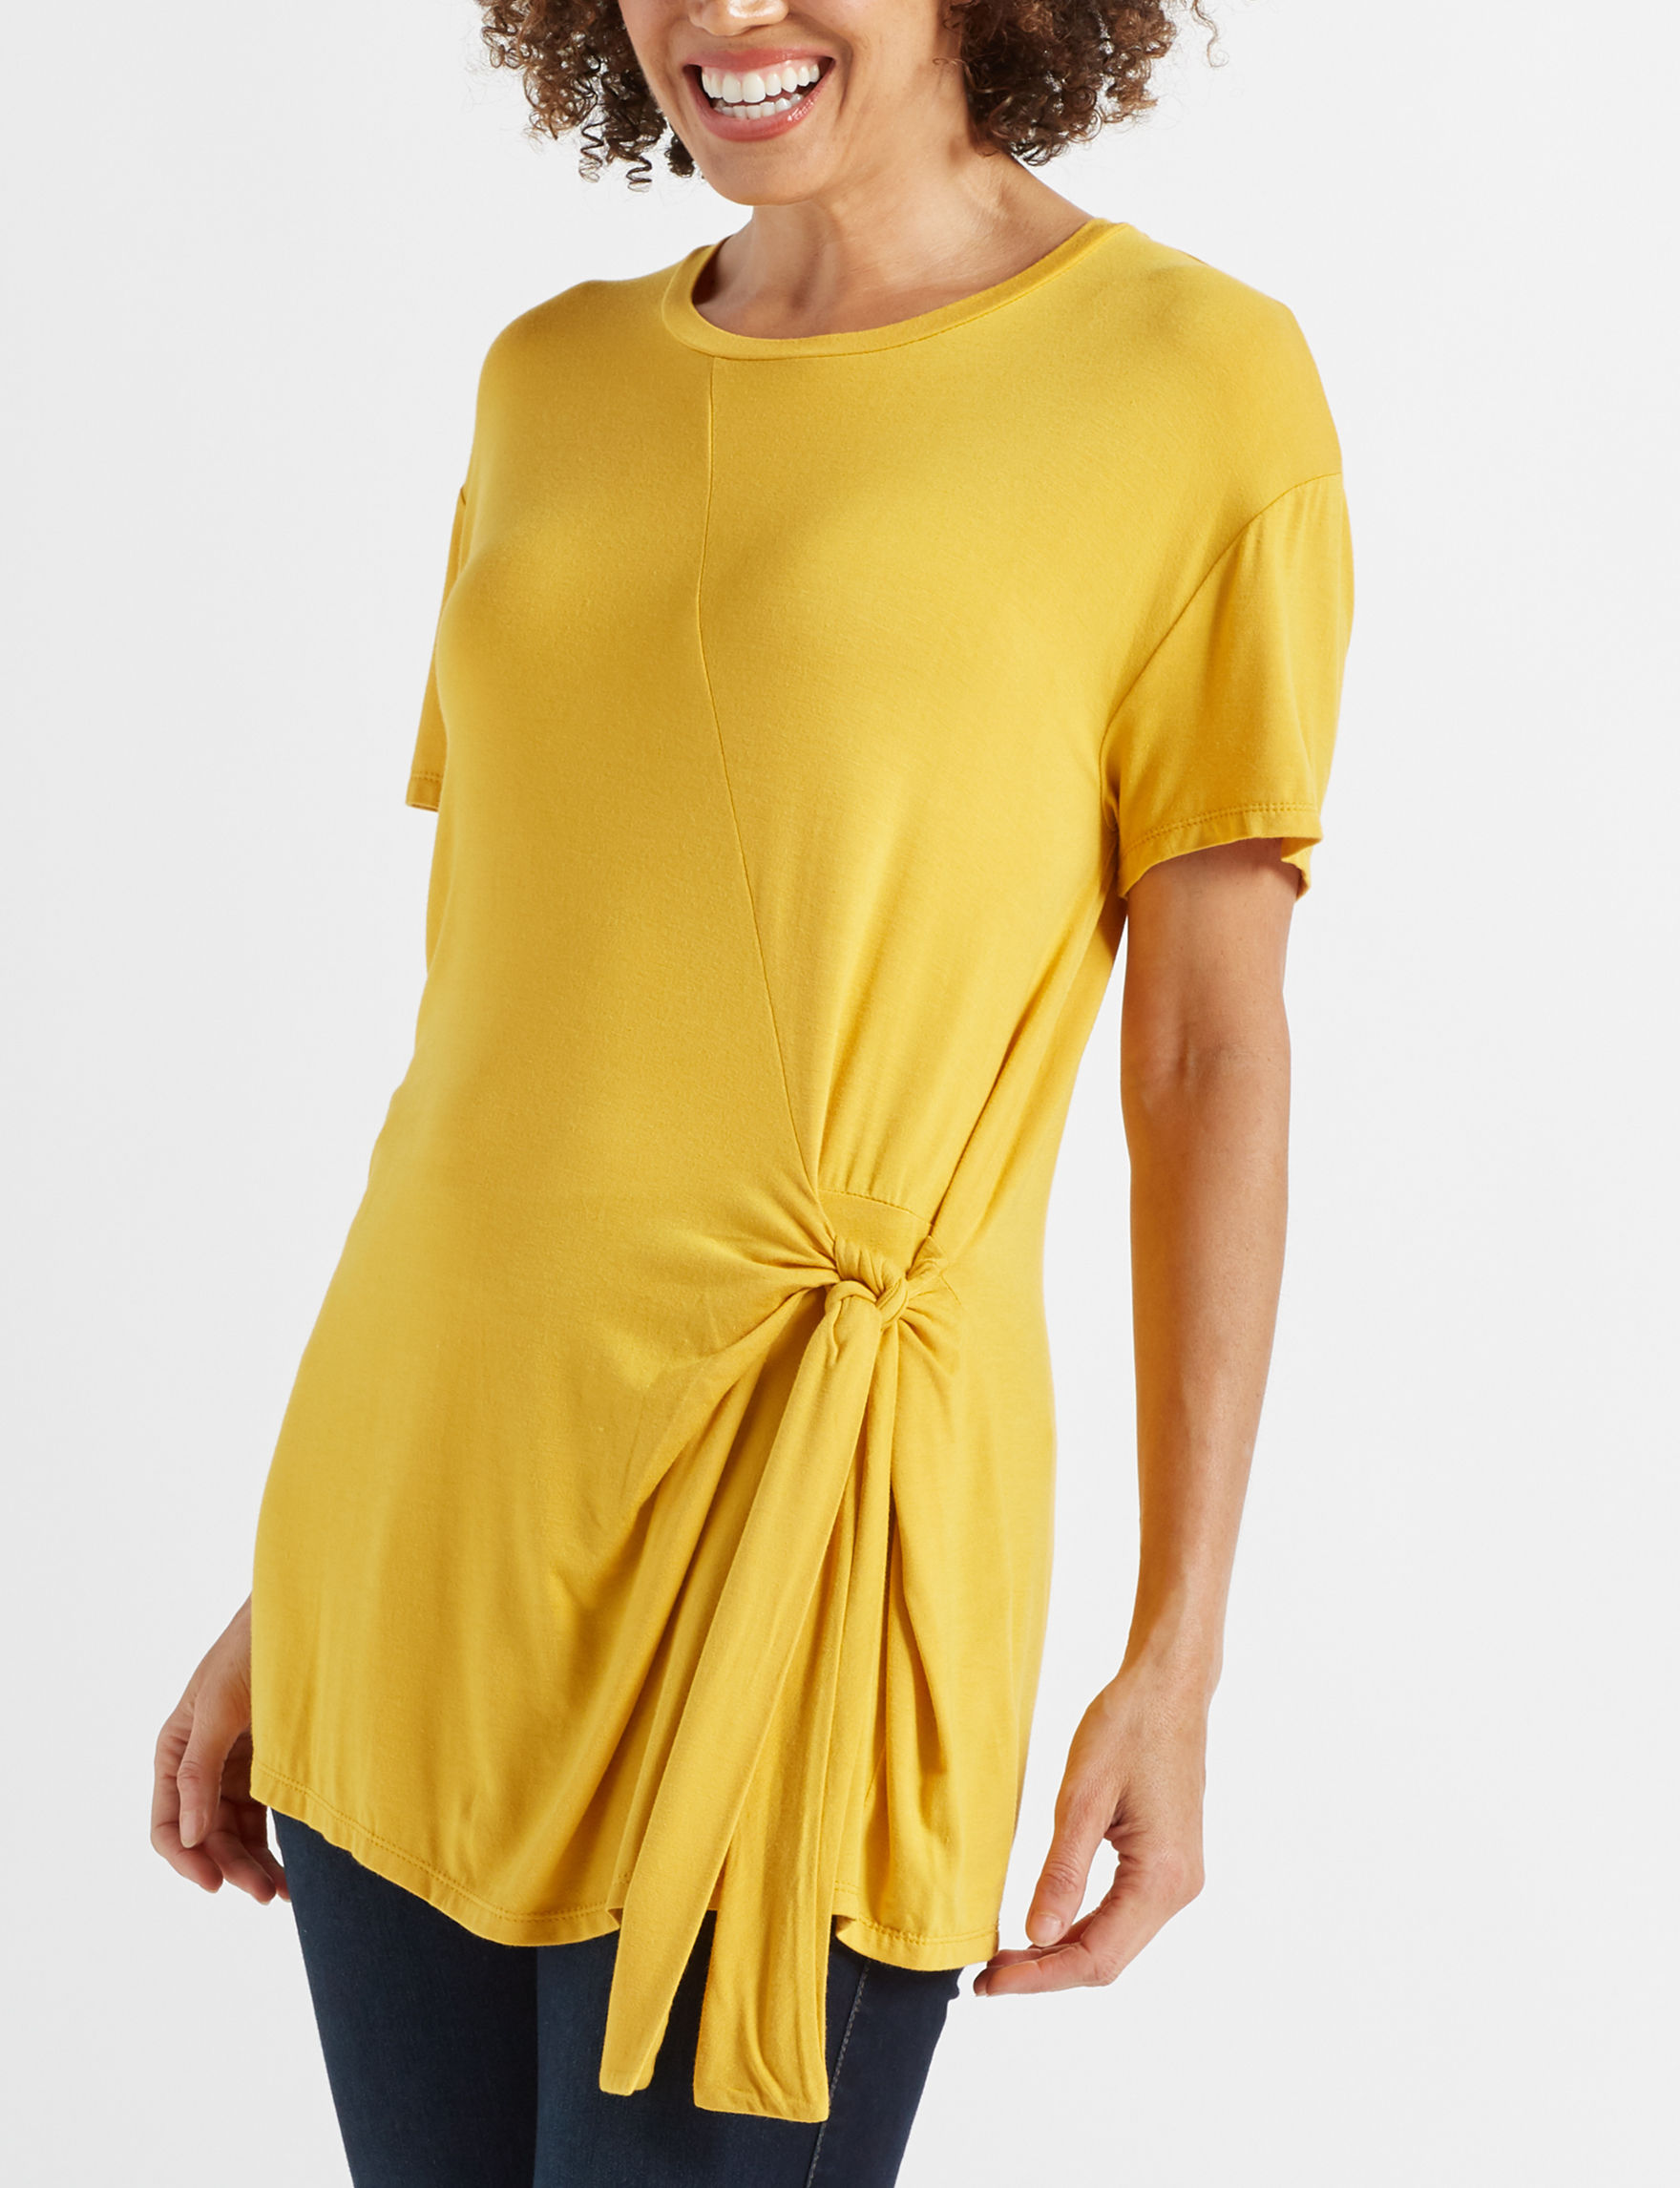 Alison Andrews Mustard Shirts & Blouses